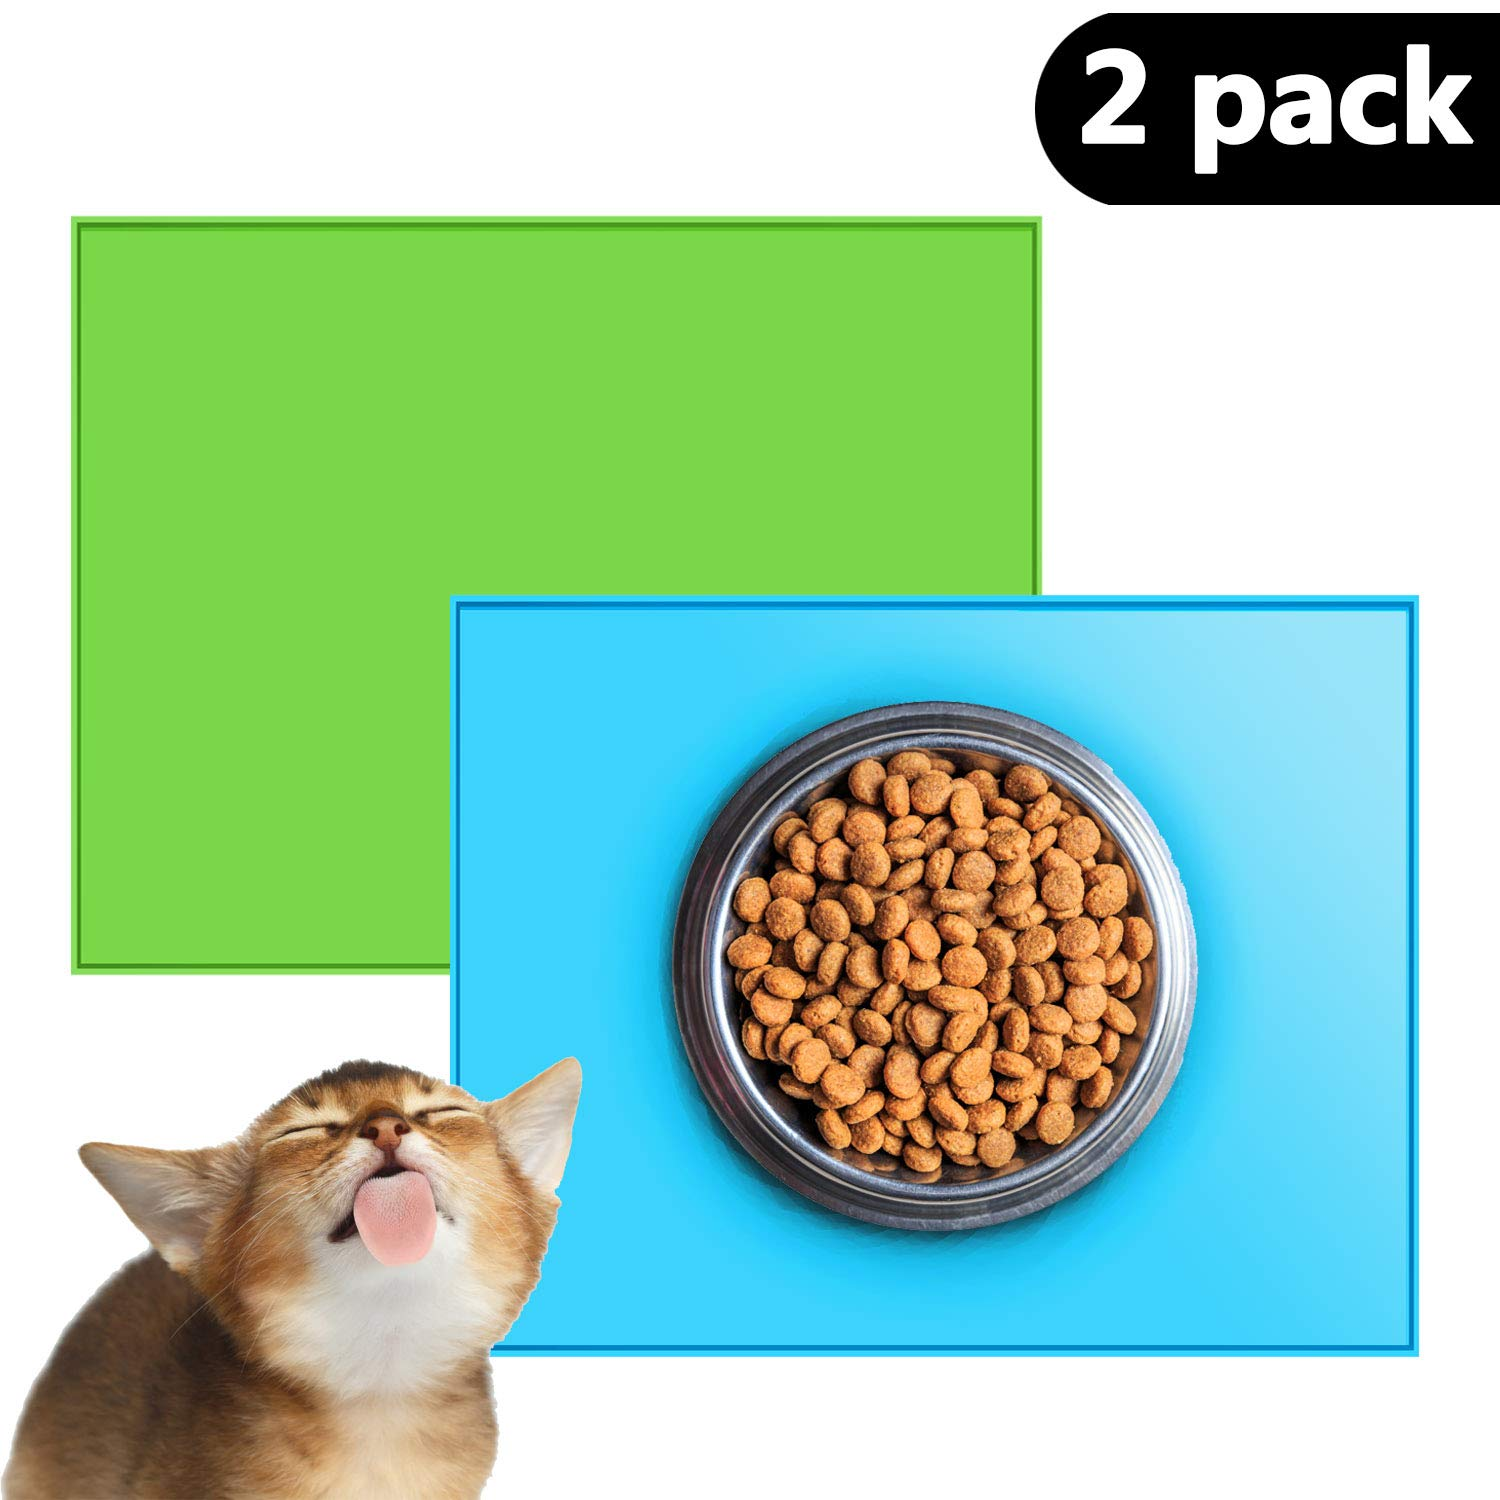 Chol & Vivi Silicone Feeding Mat Waterproof for Dogs Cats, 2 Pack FDA Grade Silicone Mats (12.3'' x 10.2'') Non-Toxic Non-allergenic for Holding Pet' Bowls, Feeder, Drinking Fountains, Blue and Green